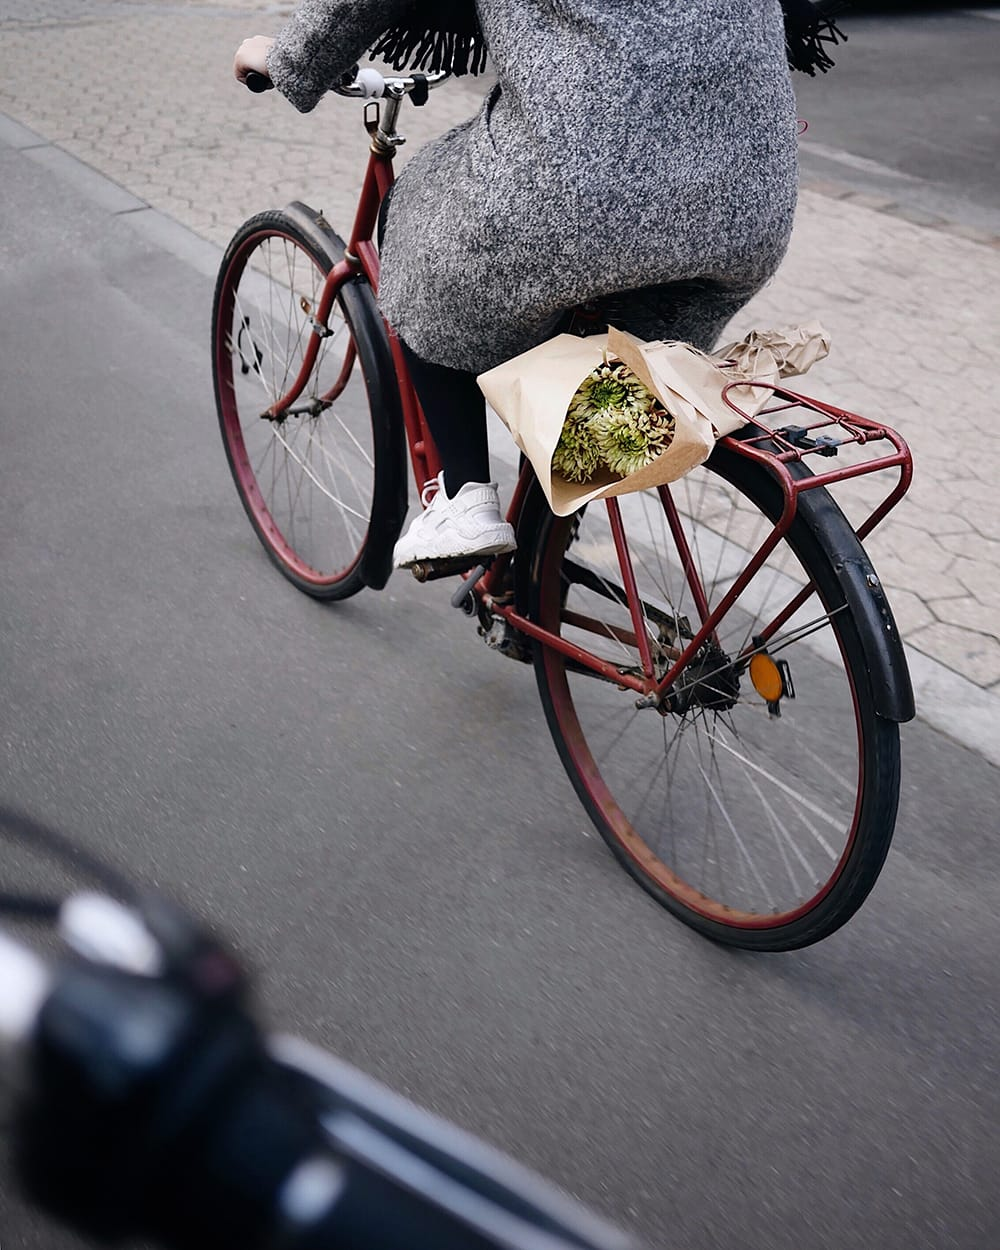 A bike rider with a bouquet of flowers on the trunk. Copenhagen